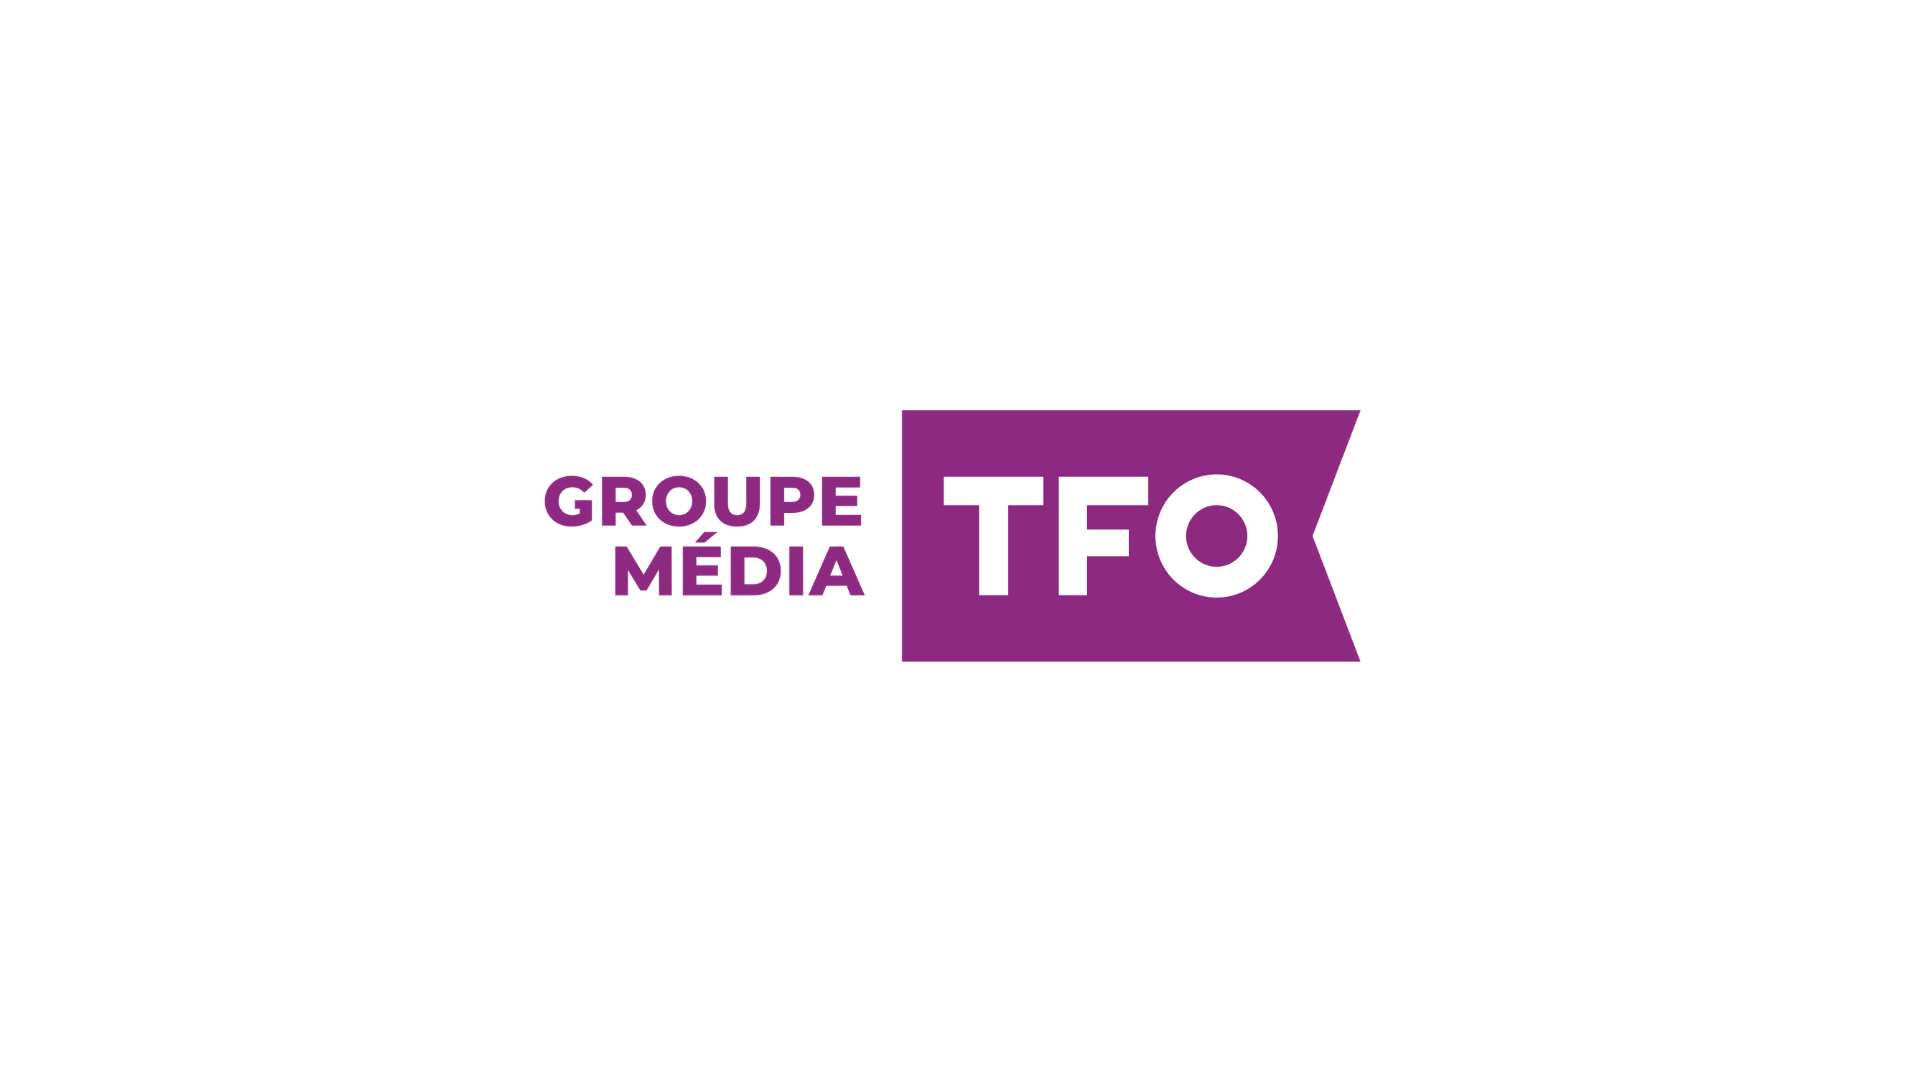 Logo Groupe Média TO.